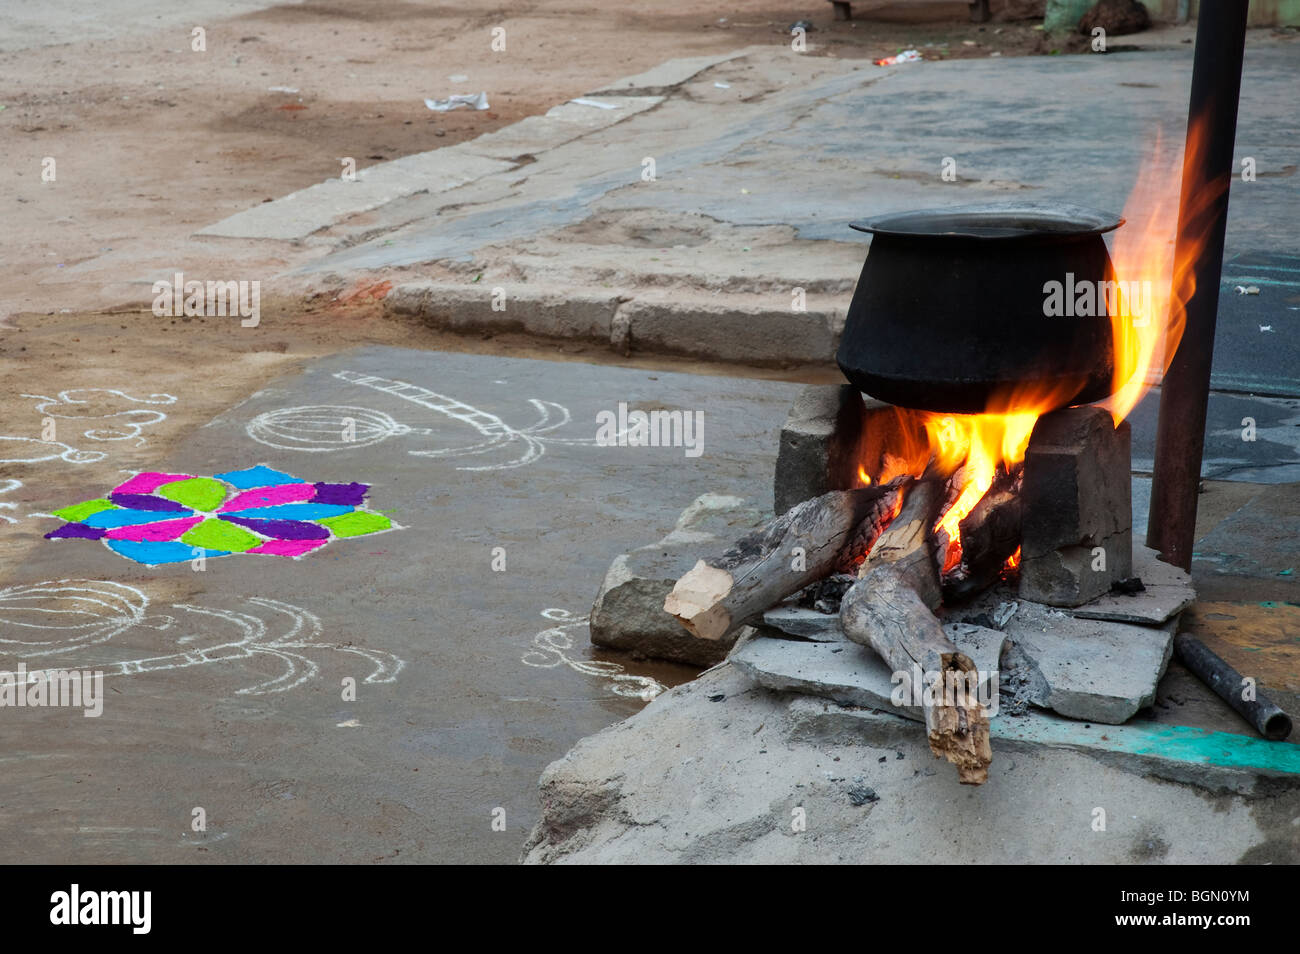 Boiling water on an open fire in a rural Indian village in front of a Rangoli design during the festival of sankranthi. - Stock Image